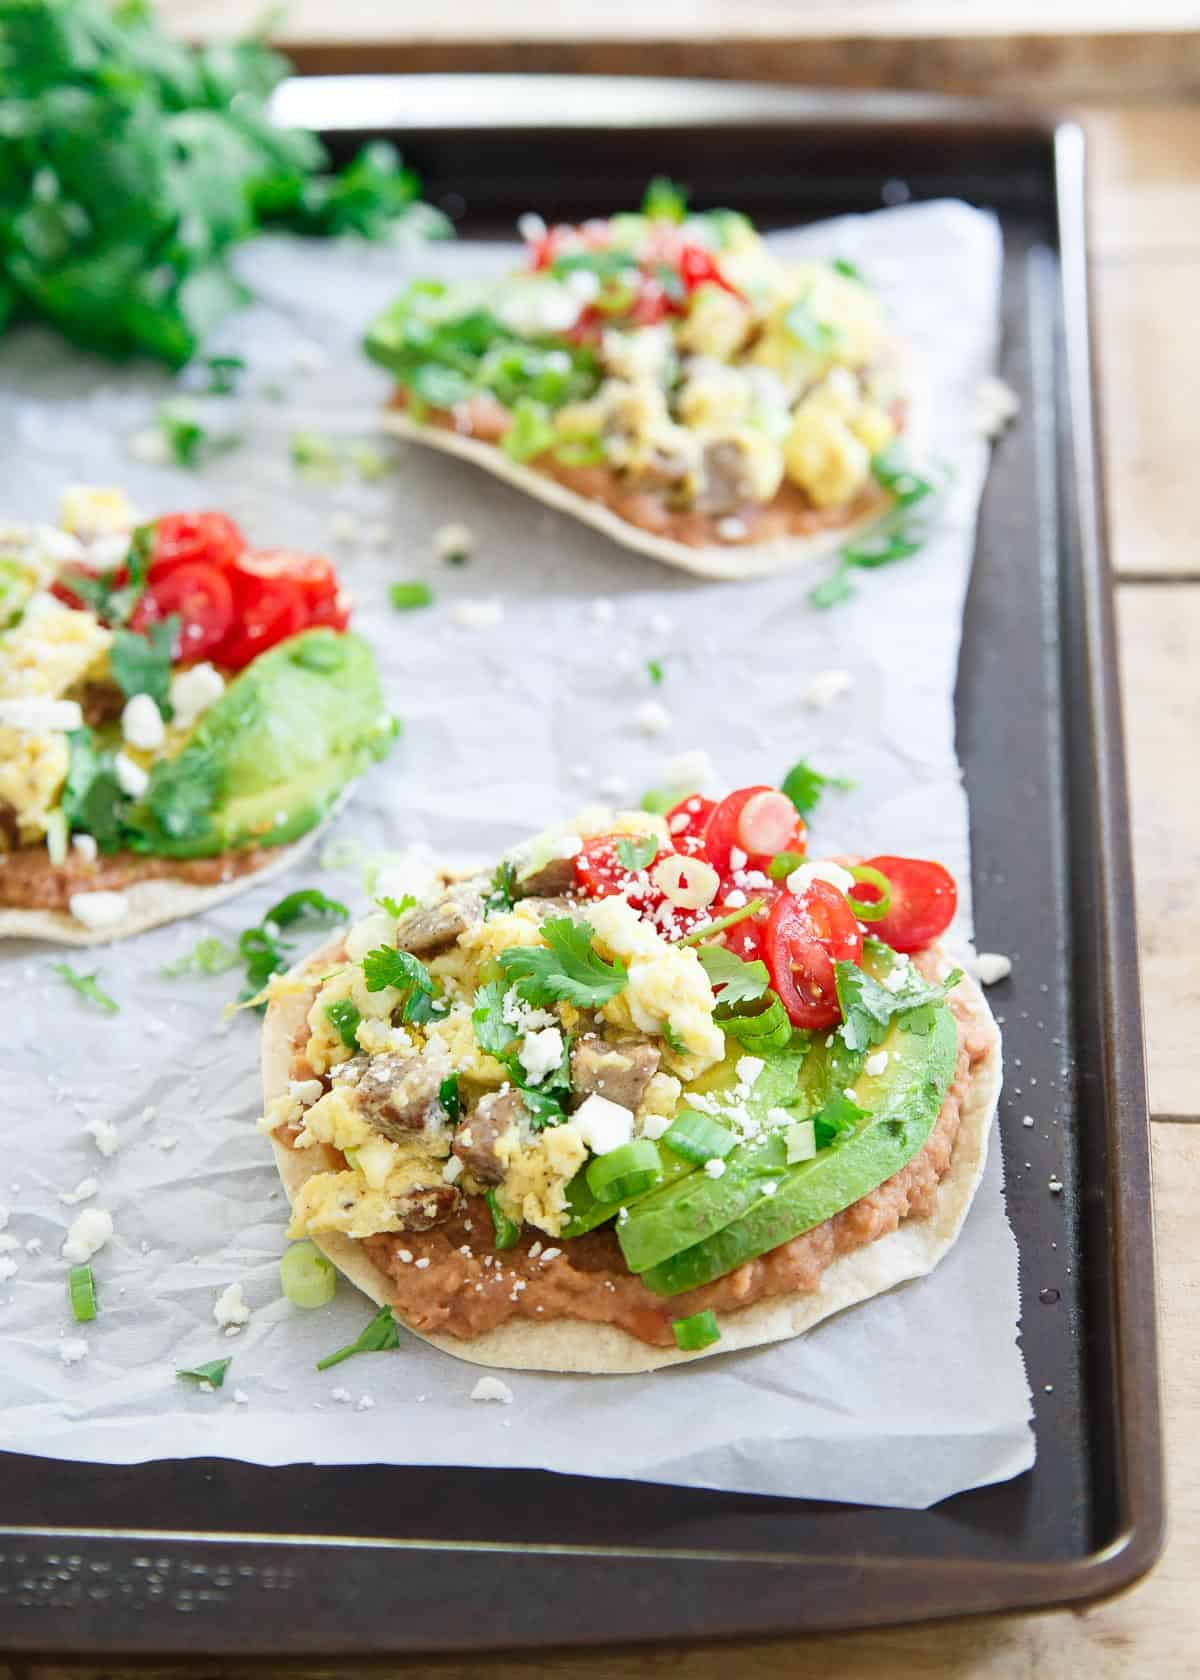 These breakfast tostadas include chicken sausage scrambled eggs piled high on a refried bean base. Avocado, tomatoes and cotija top it all off!